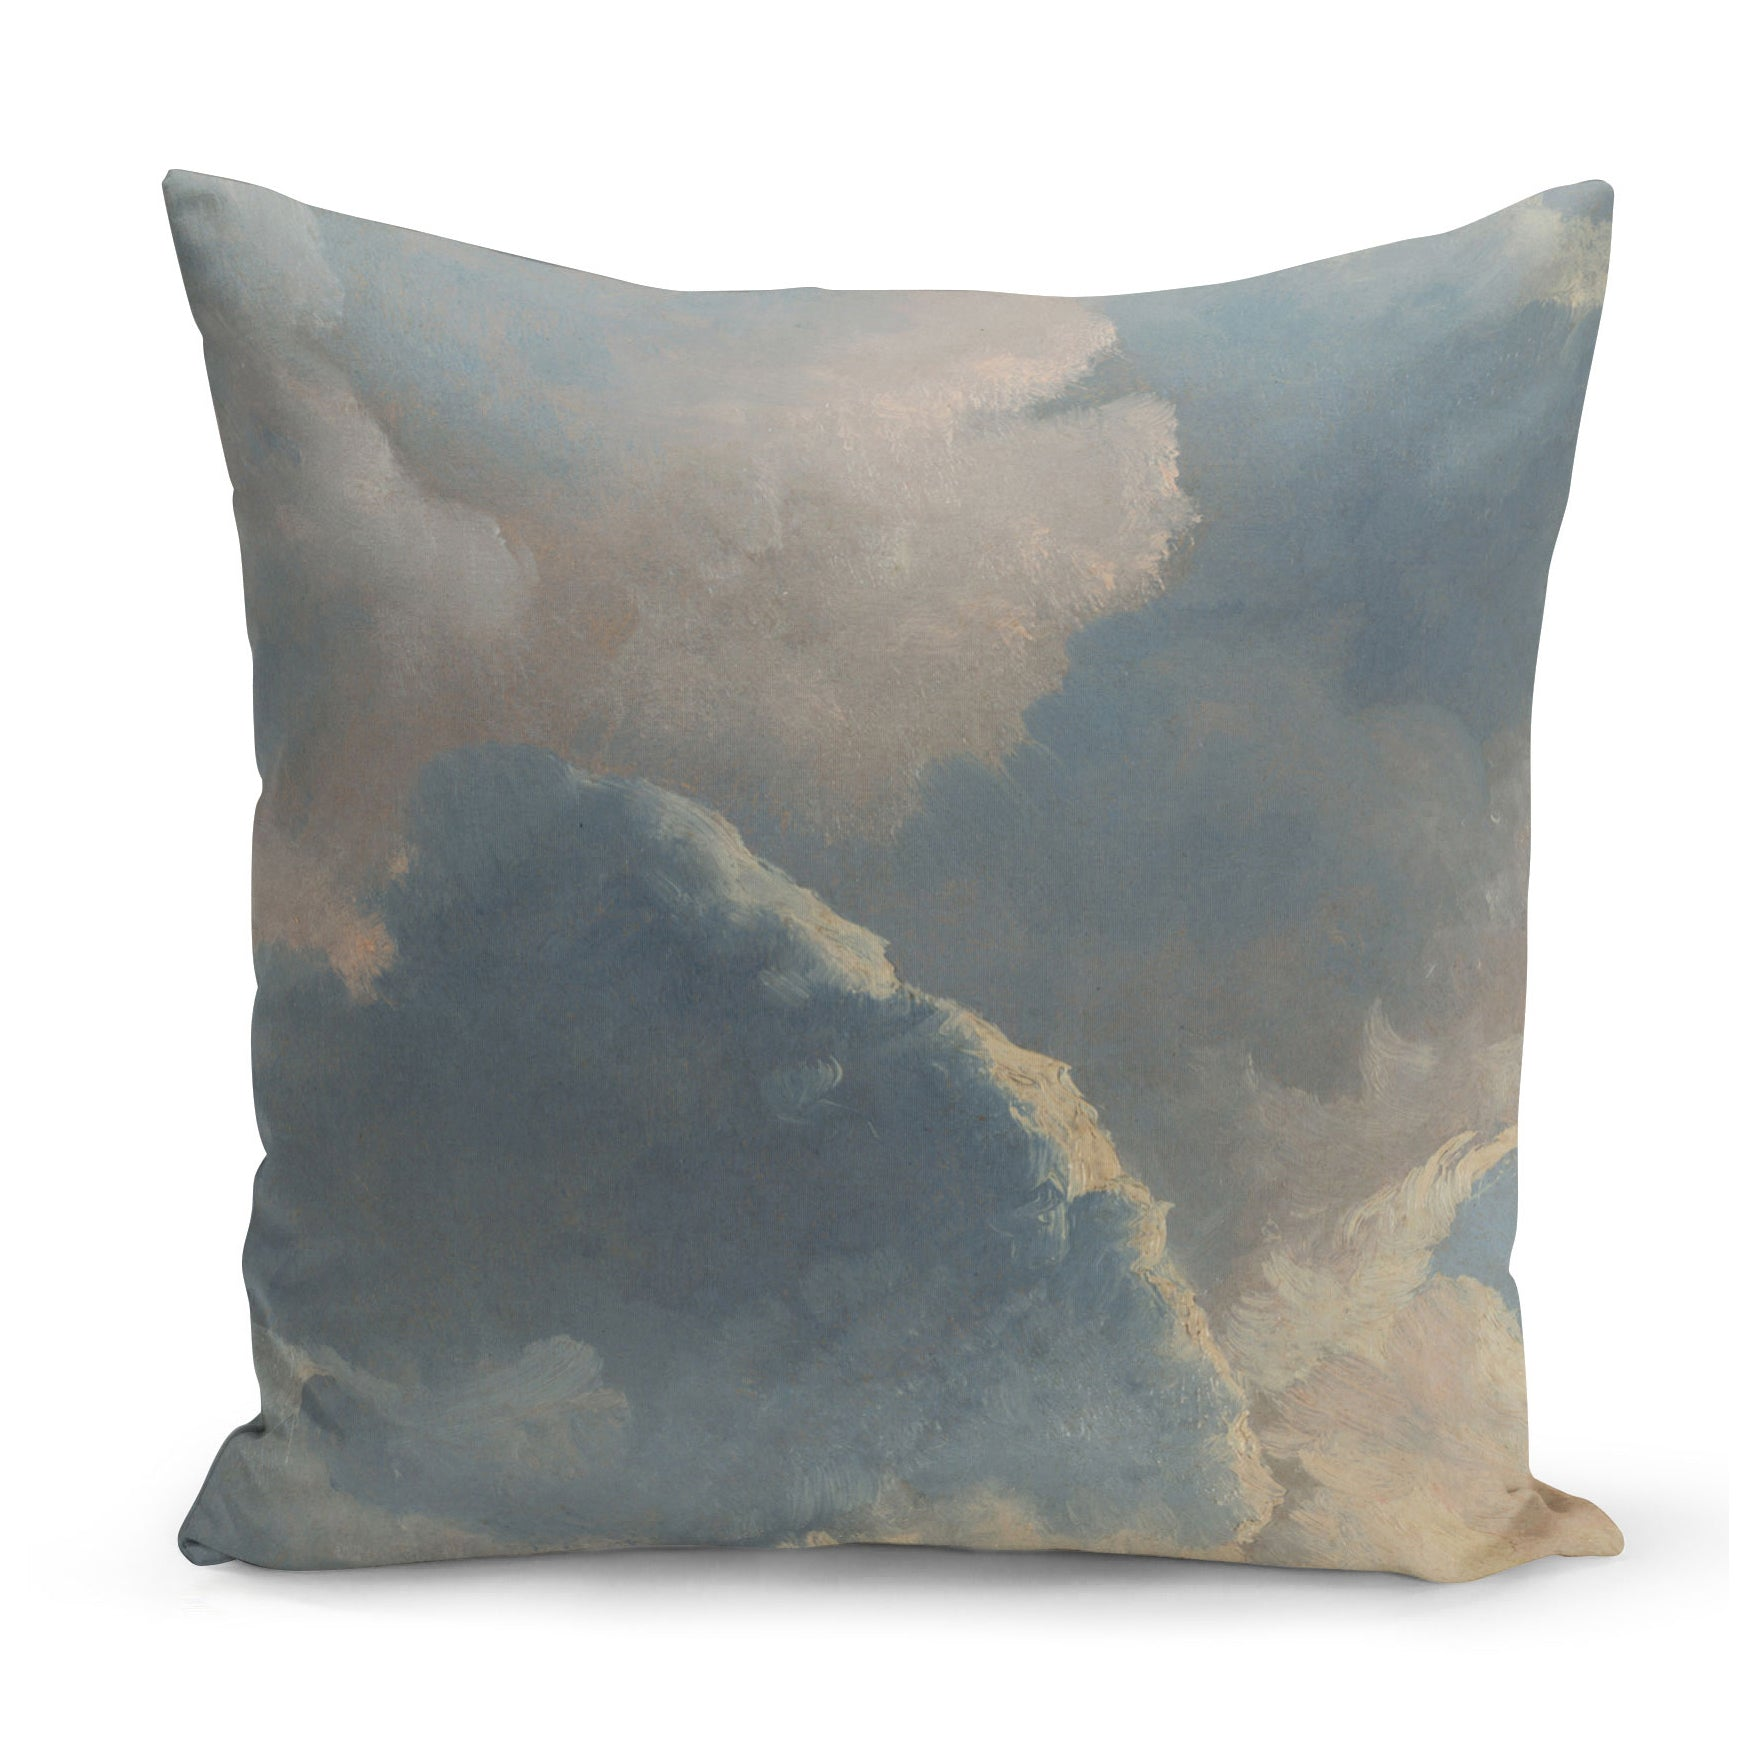 cushion with painted cloud design in blue and cream